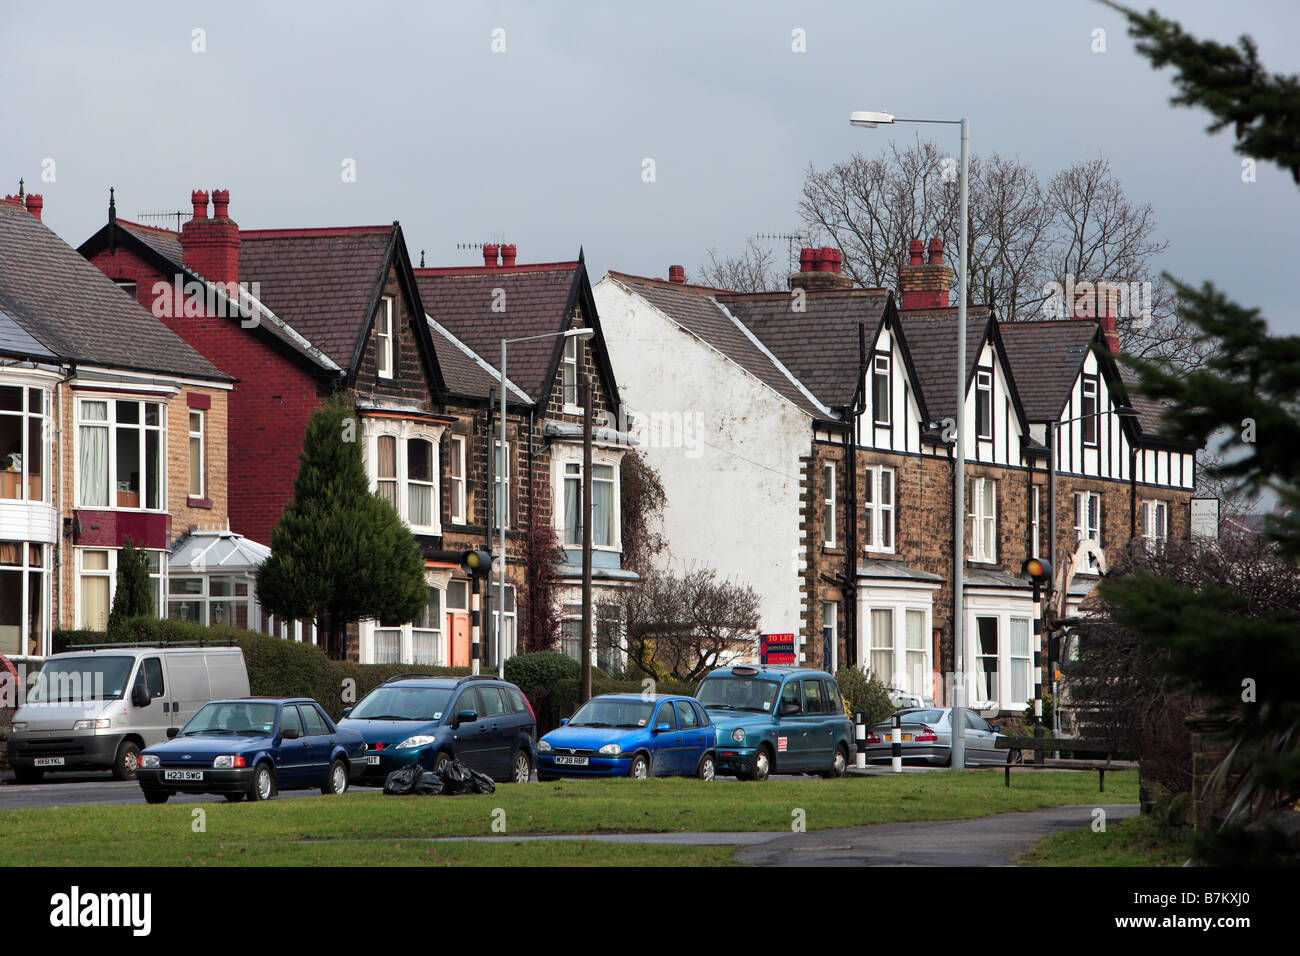 Urban Housing with parked cars - Stock Image